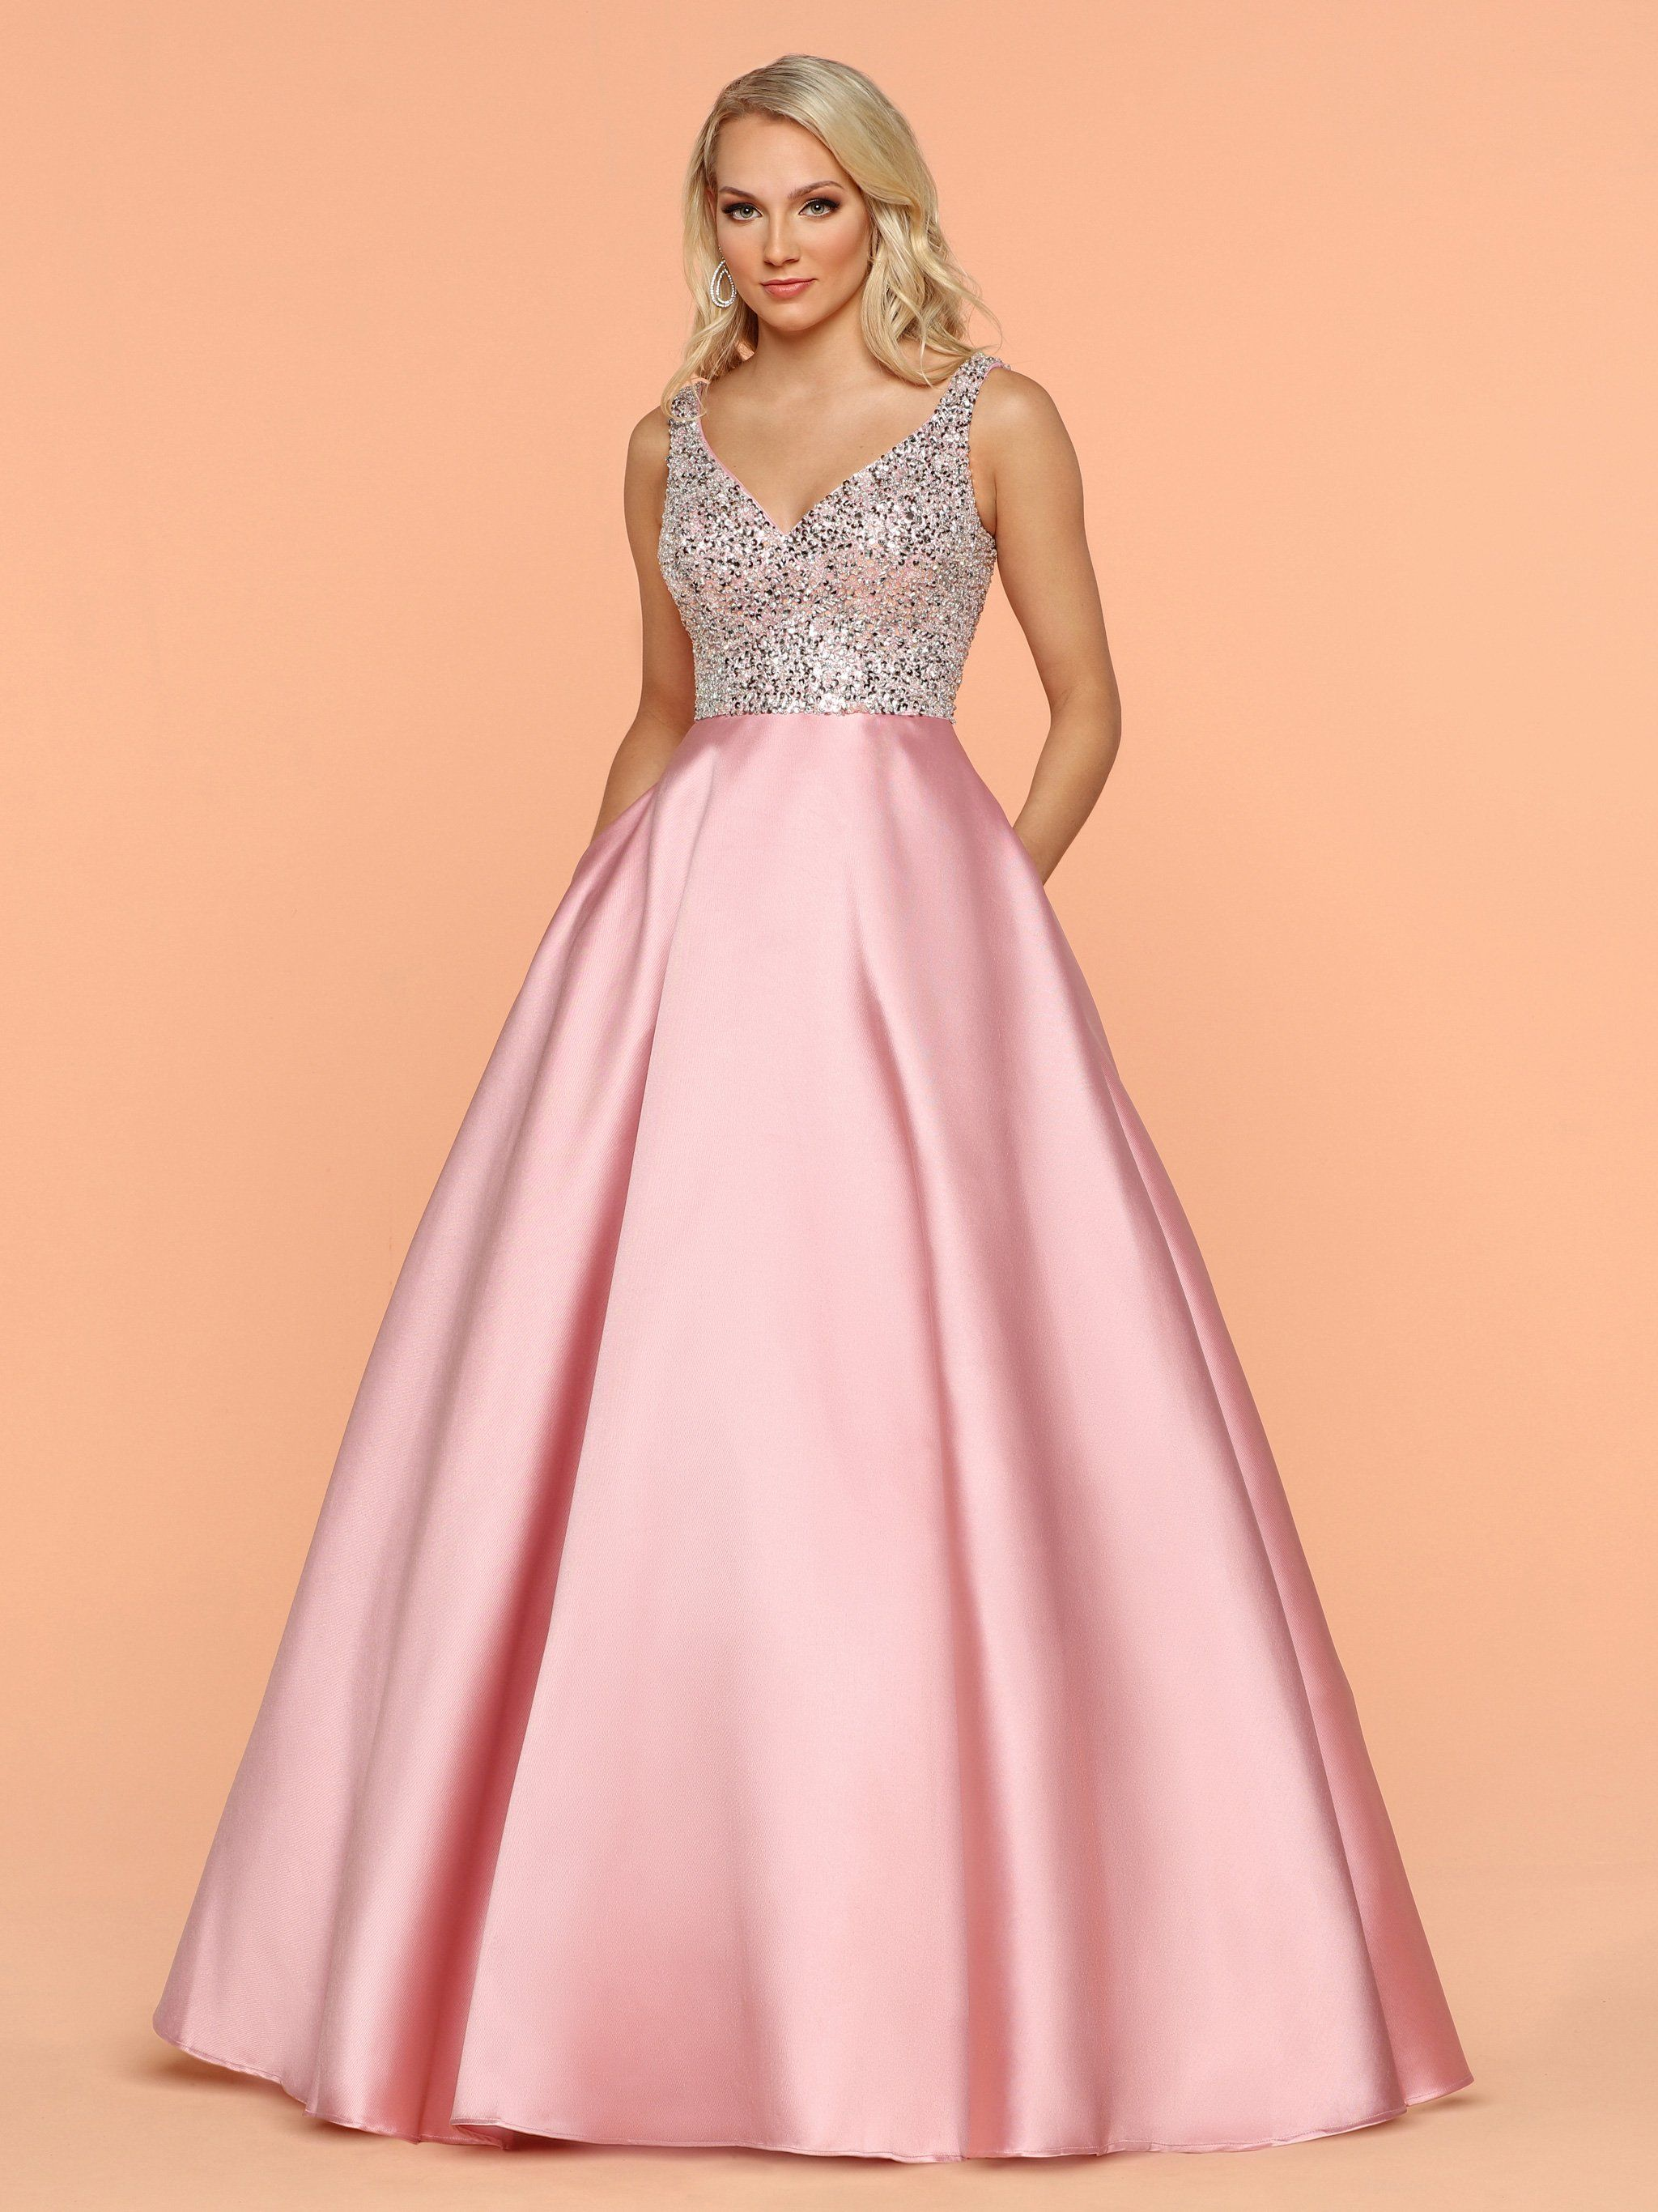 Sparkle by Emme prom dress, evening dress 71800 A-line size 18 pink ...